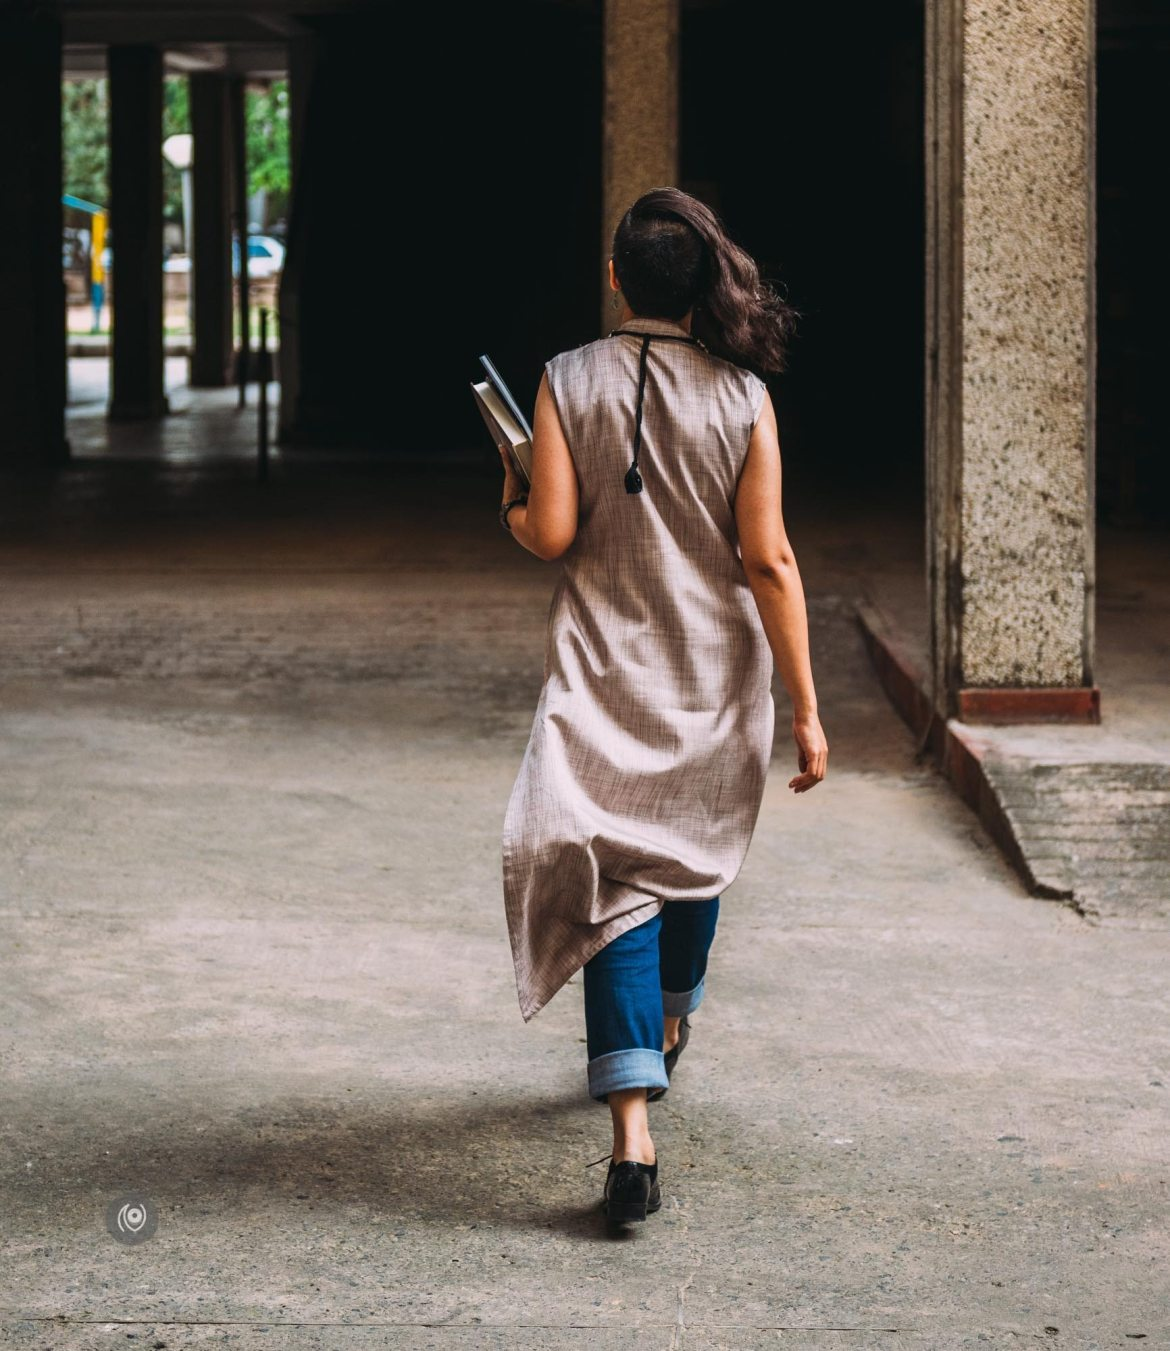 Naina.co, Naina Redhu, Luxury Photographer, Lifestyle Photographer, Indian Photographer, Photographer India, Luxury Photographer India, Lifestyle Photographer India, Photography, Professional Photographer India, Luxury Blogger, Lifestyle Blogger, Luxury Blogger India, Lifestyle Blogger India, Photo Blogger India, Photo Blogger, Business Today, The Luxury Issue 2016, Luxury Special, Fortnightly, Magazine, Print Magazine, In The Name of Gucci, Patricia Gucci, Book Review, Byline, By Line, Writer, Article, Luxury Book, Personal Style, CoverUp, OOTD